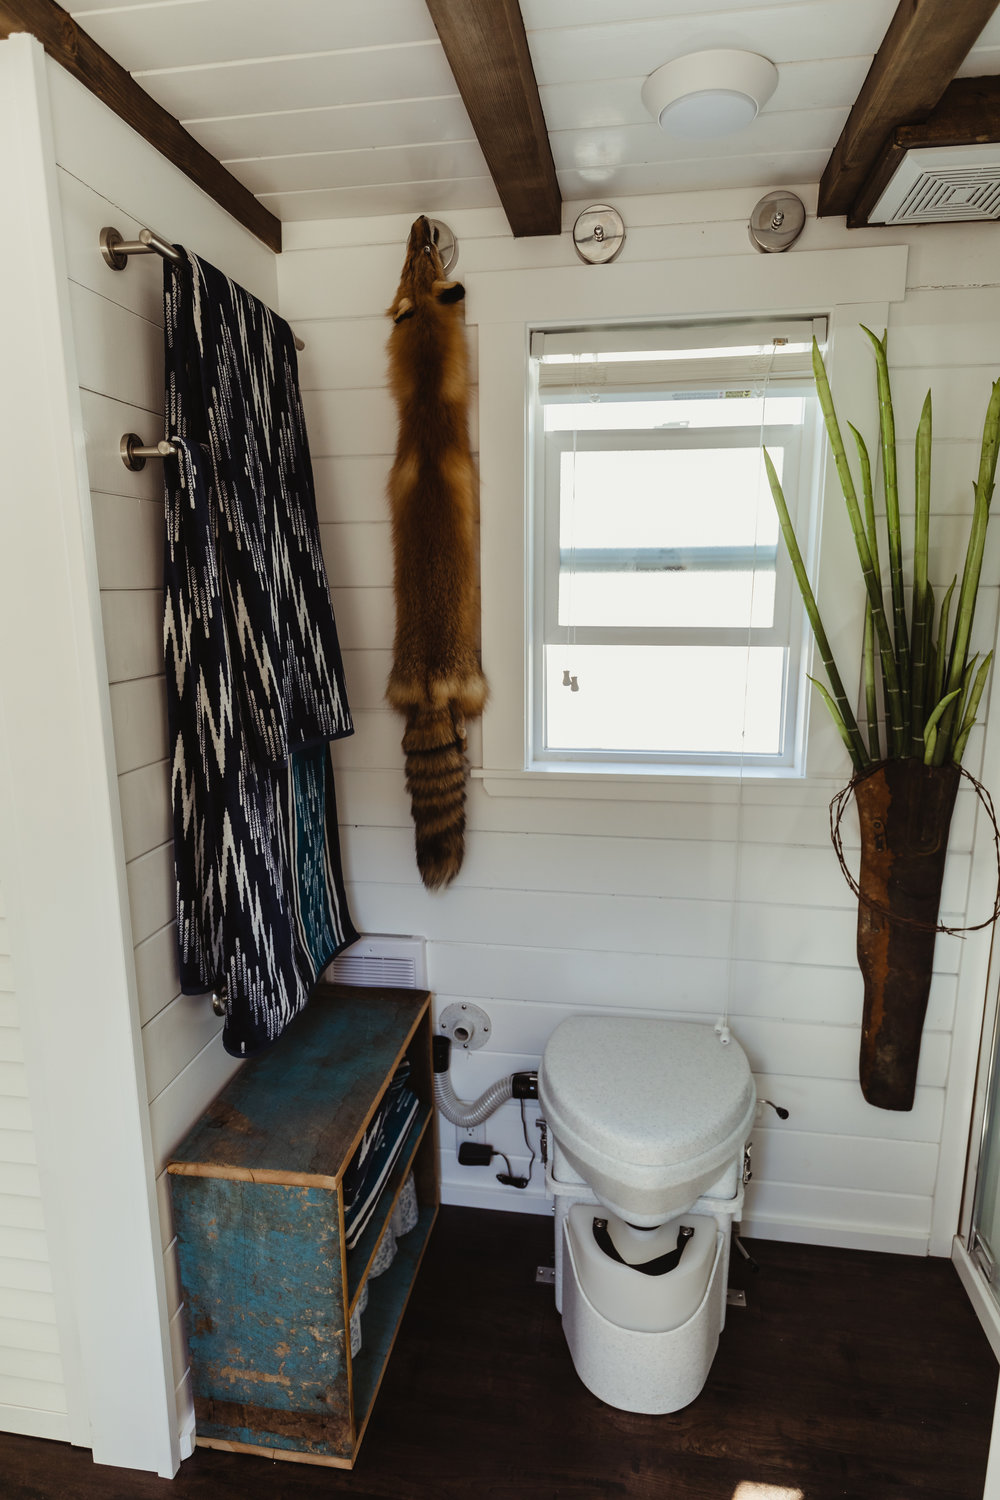 In a tiny house there is limited privacy. It's important that ALL the spaces are functional and beautiful. The towels and distressed shelves are practical and on theme with the rest of the house. The fox fur and old scabbard repurposed as a hanging vase add a touch of Wyoming whimsy.